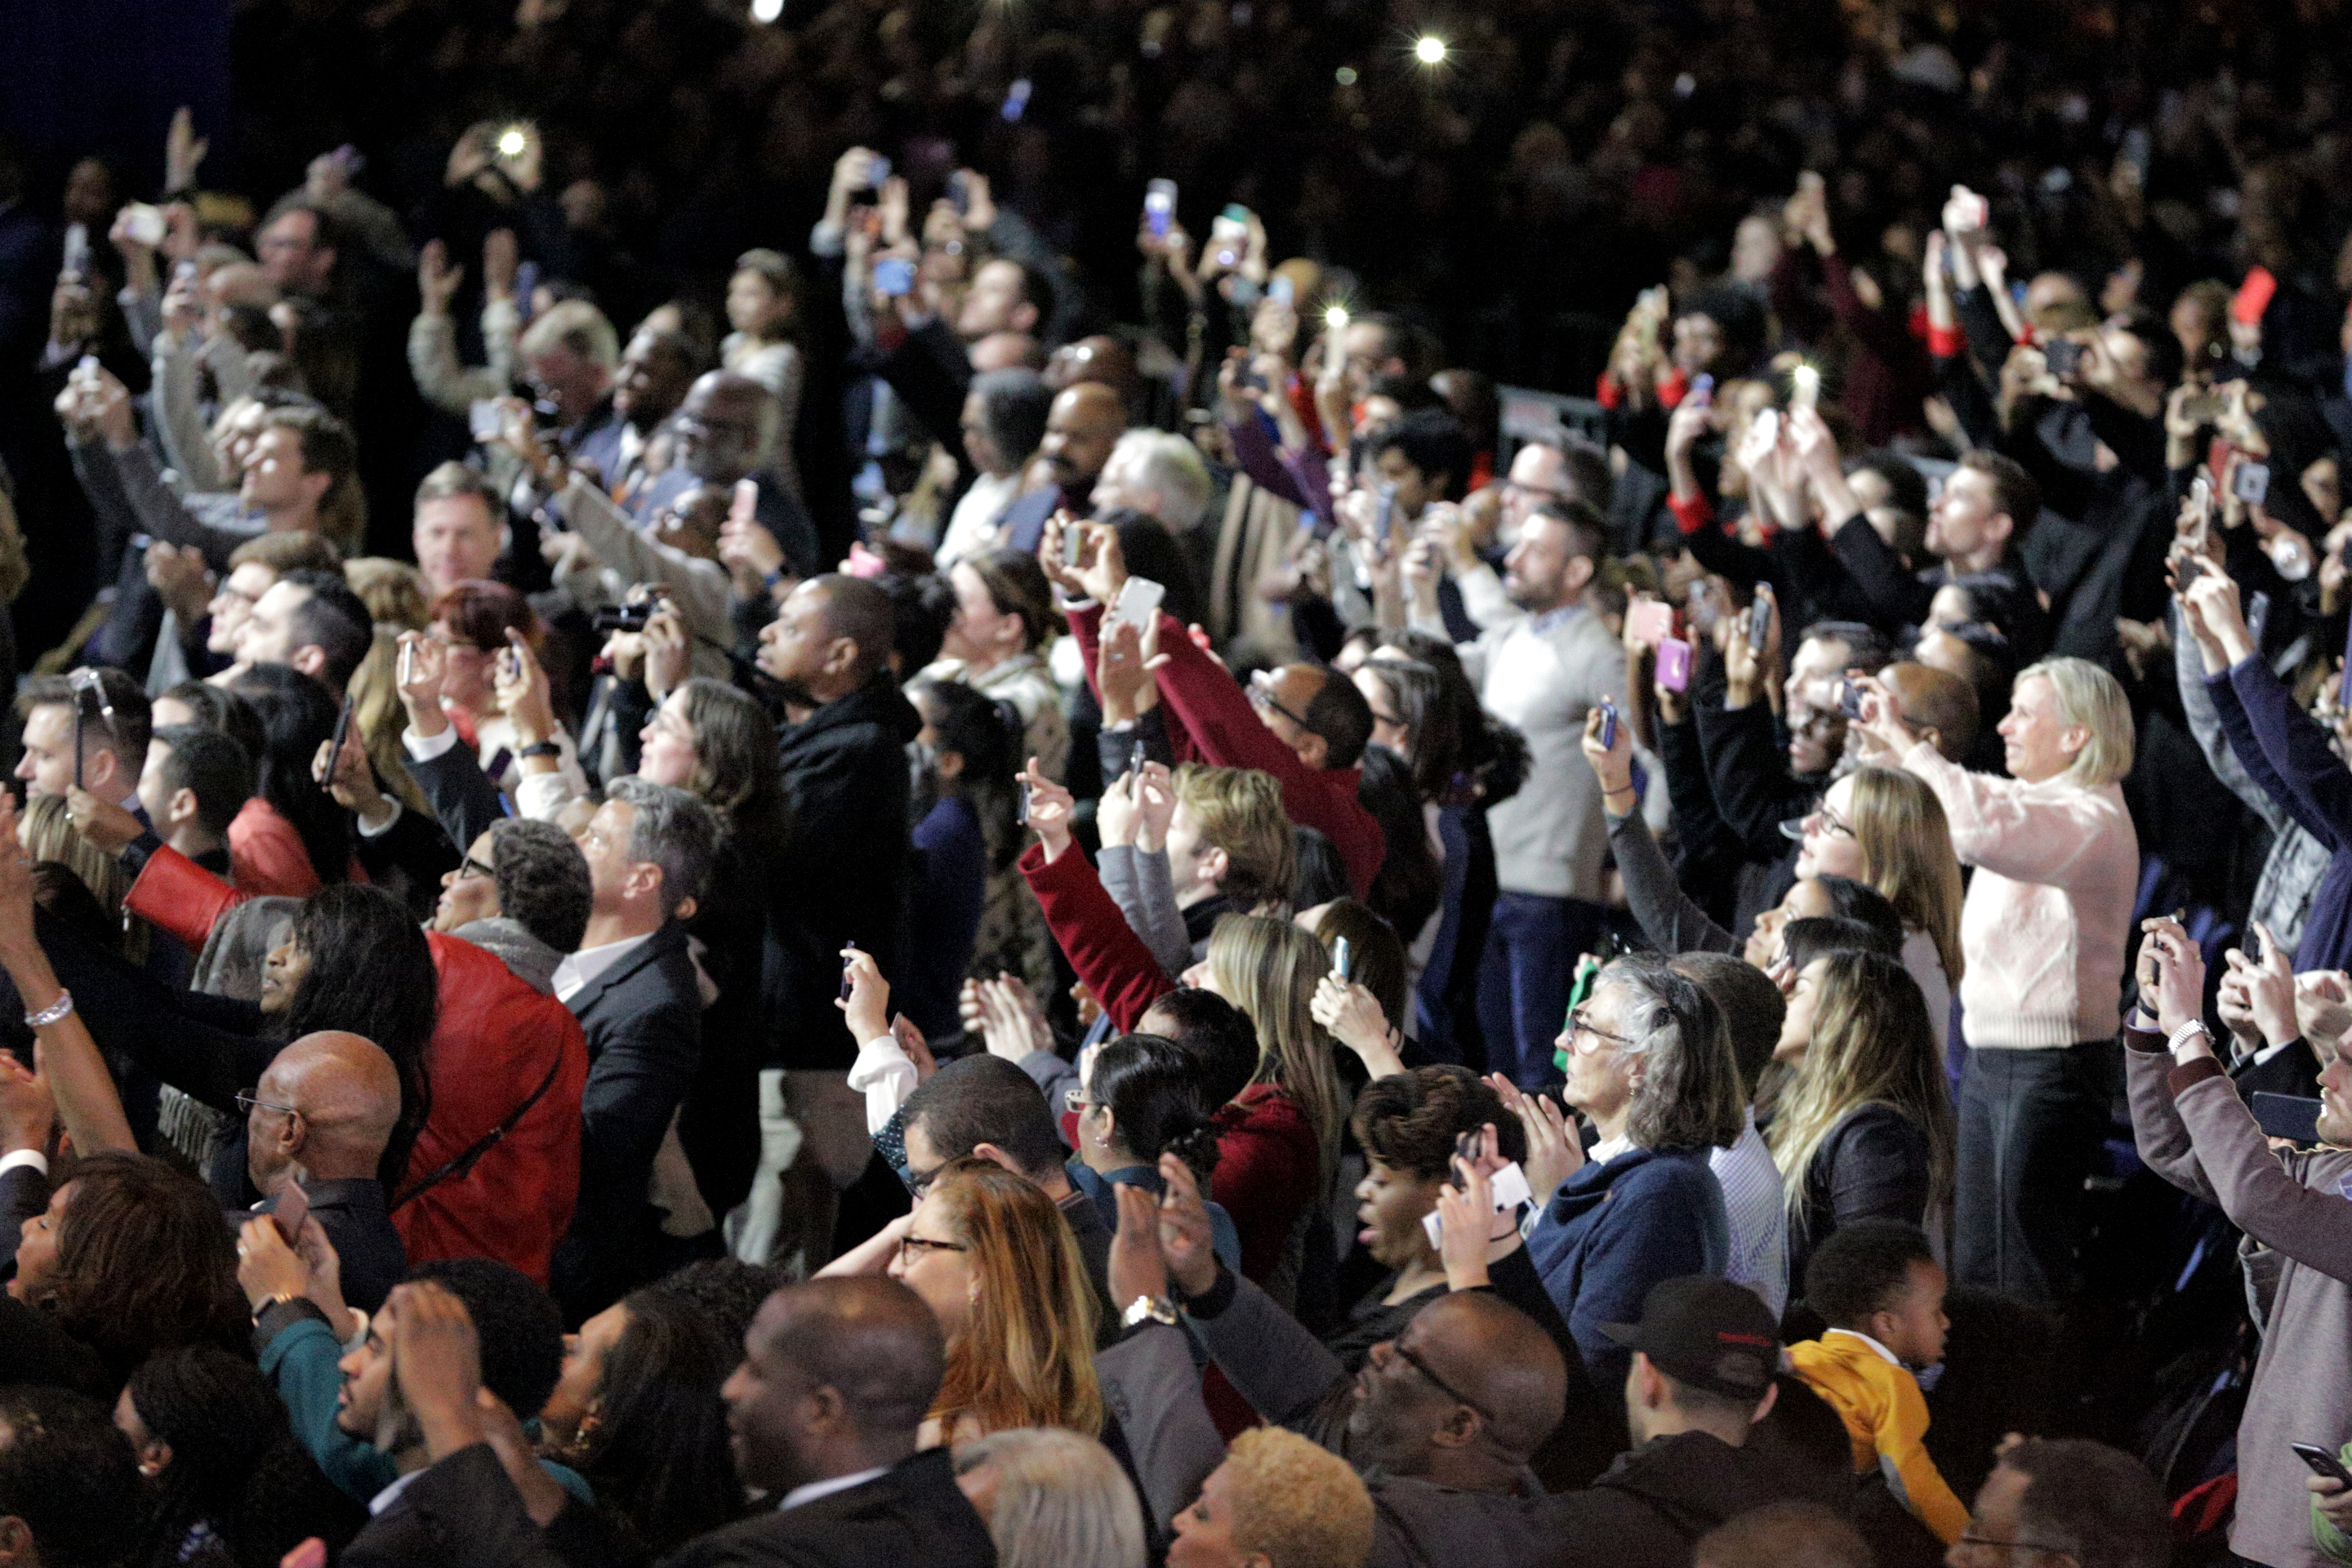 The crowd at McCormick Place reacts to Barack Obama during his farewell speech Tuesday in Chicago. (Andrew Gill/WBEZ)